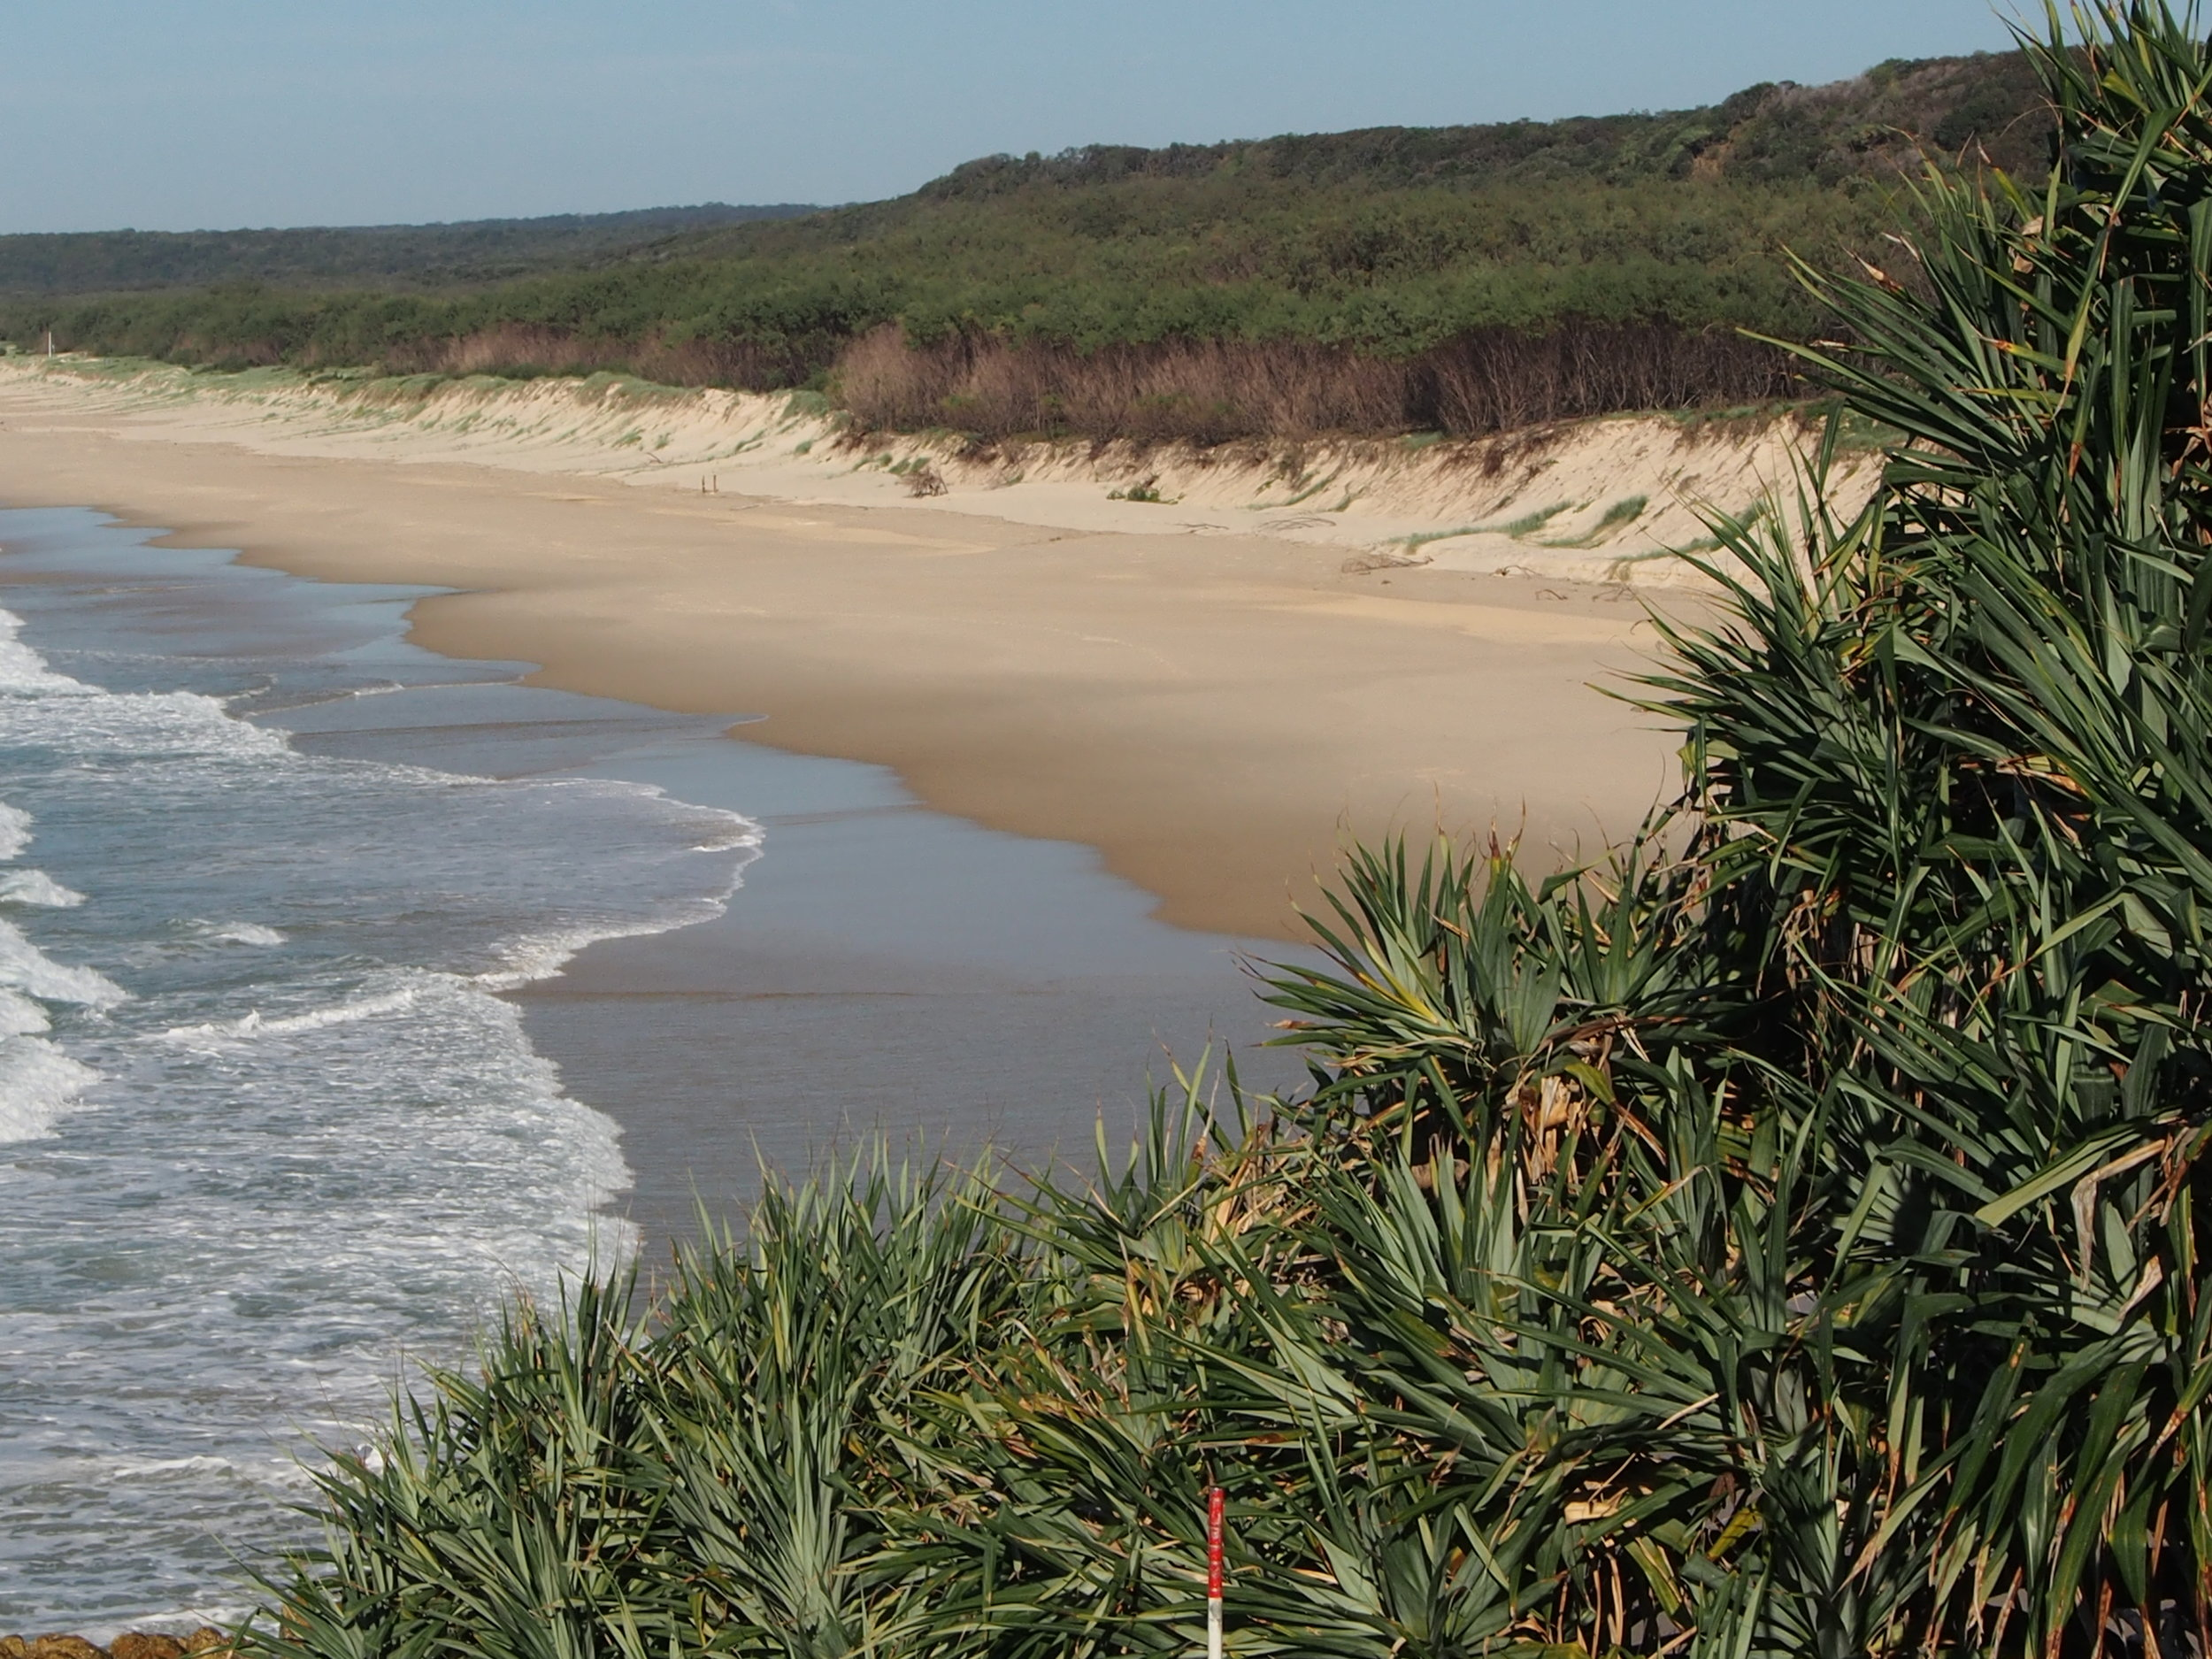 View of the beautiful North Stradbroke Island beach from Point Lookout Headland © Everick Foundation Ltd